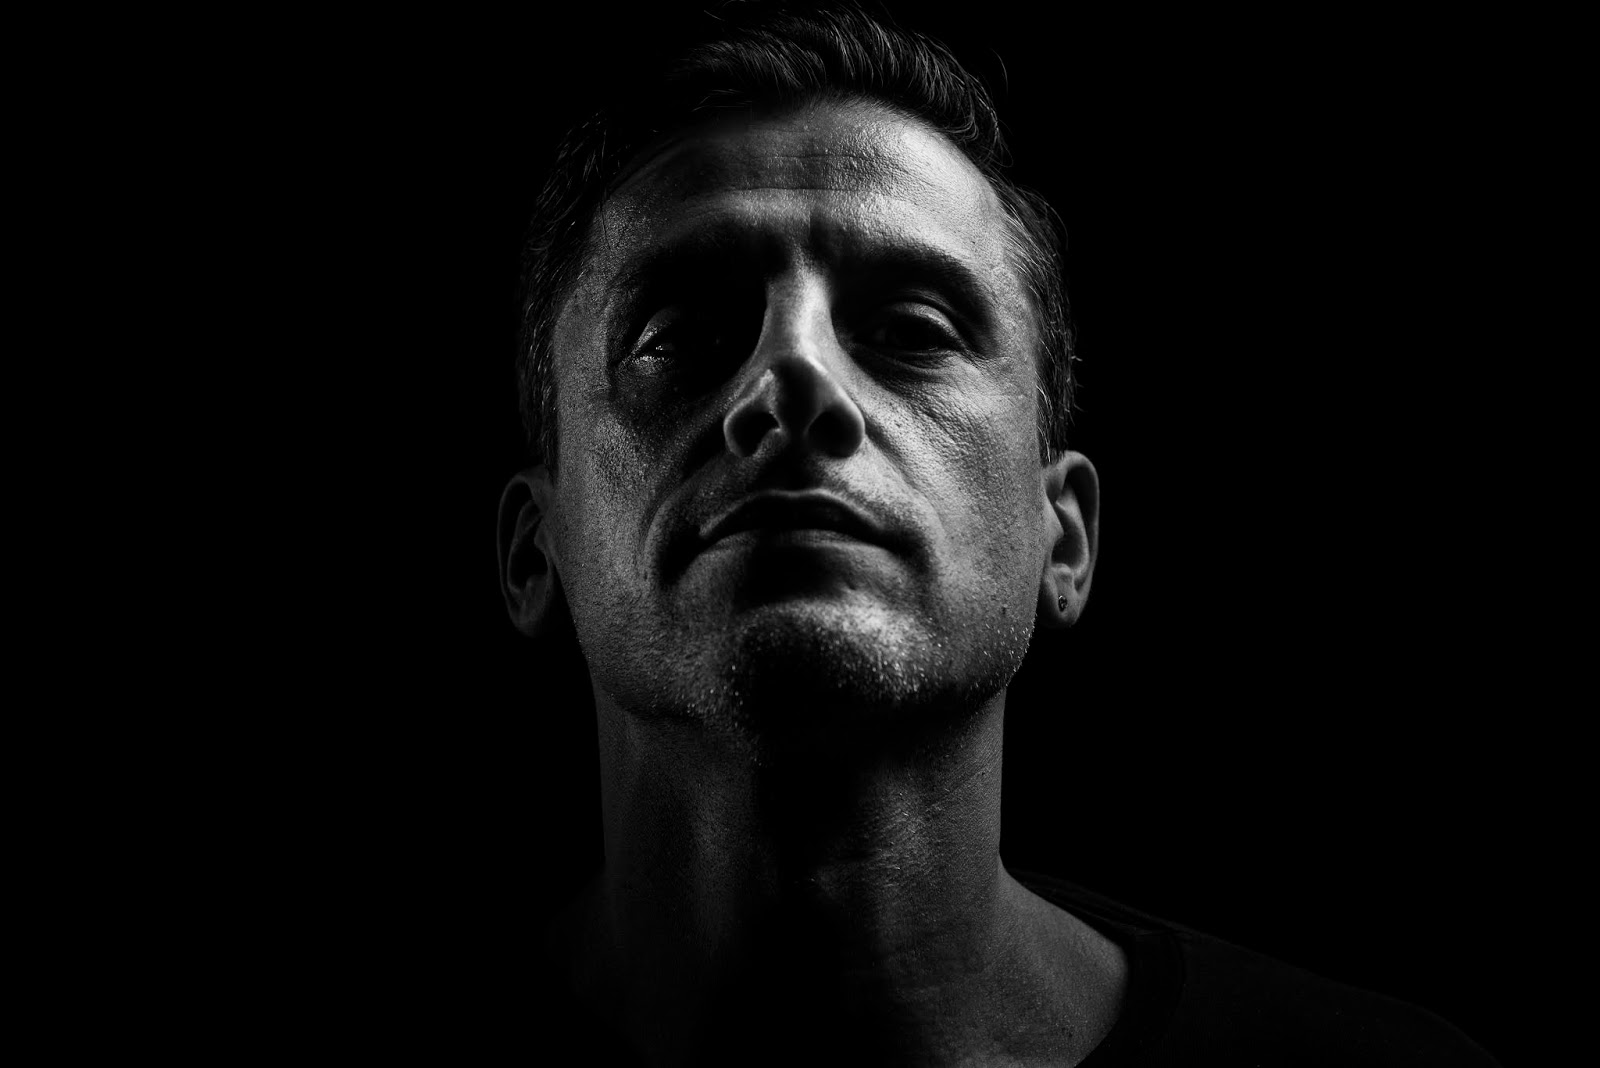 Time to announce the new EP on Ben Klock's Klockworks which